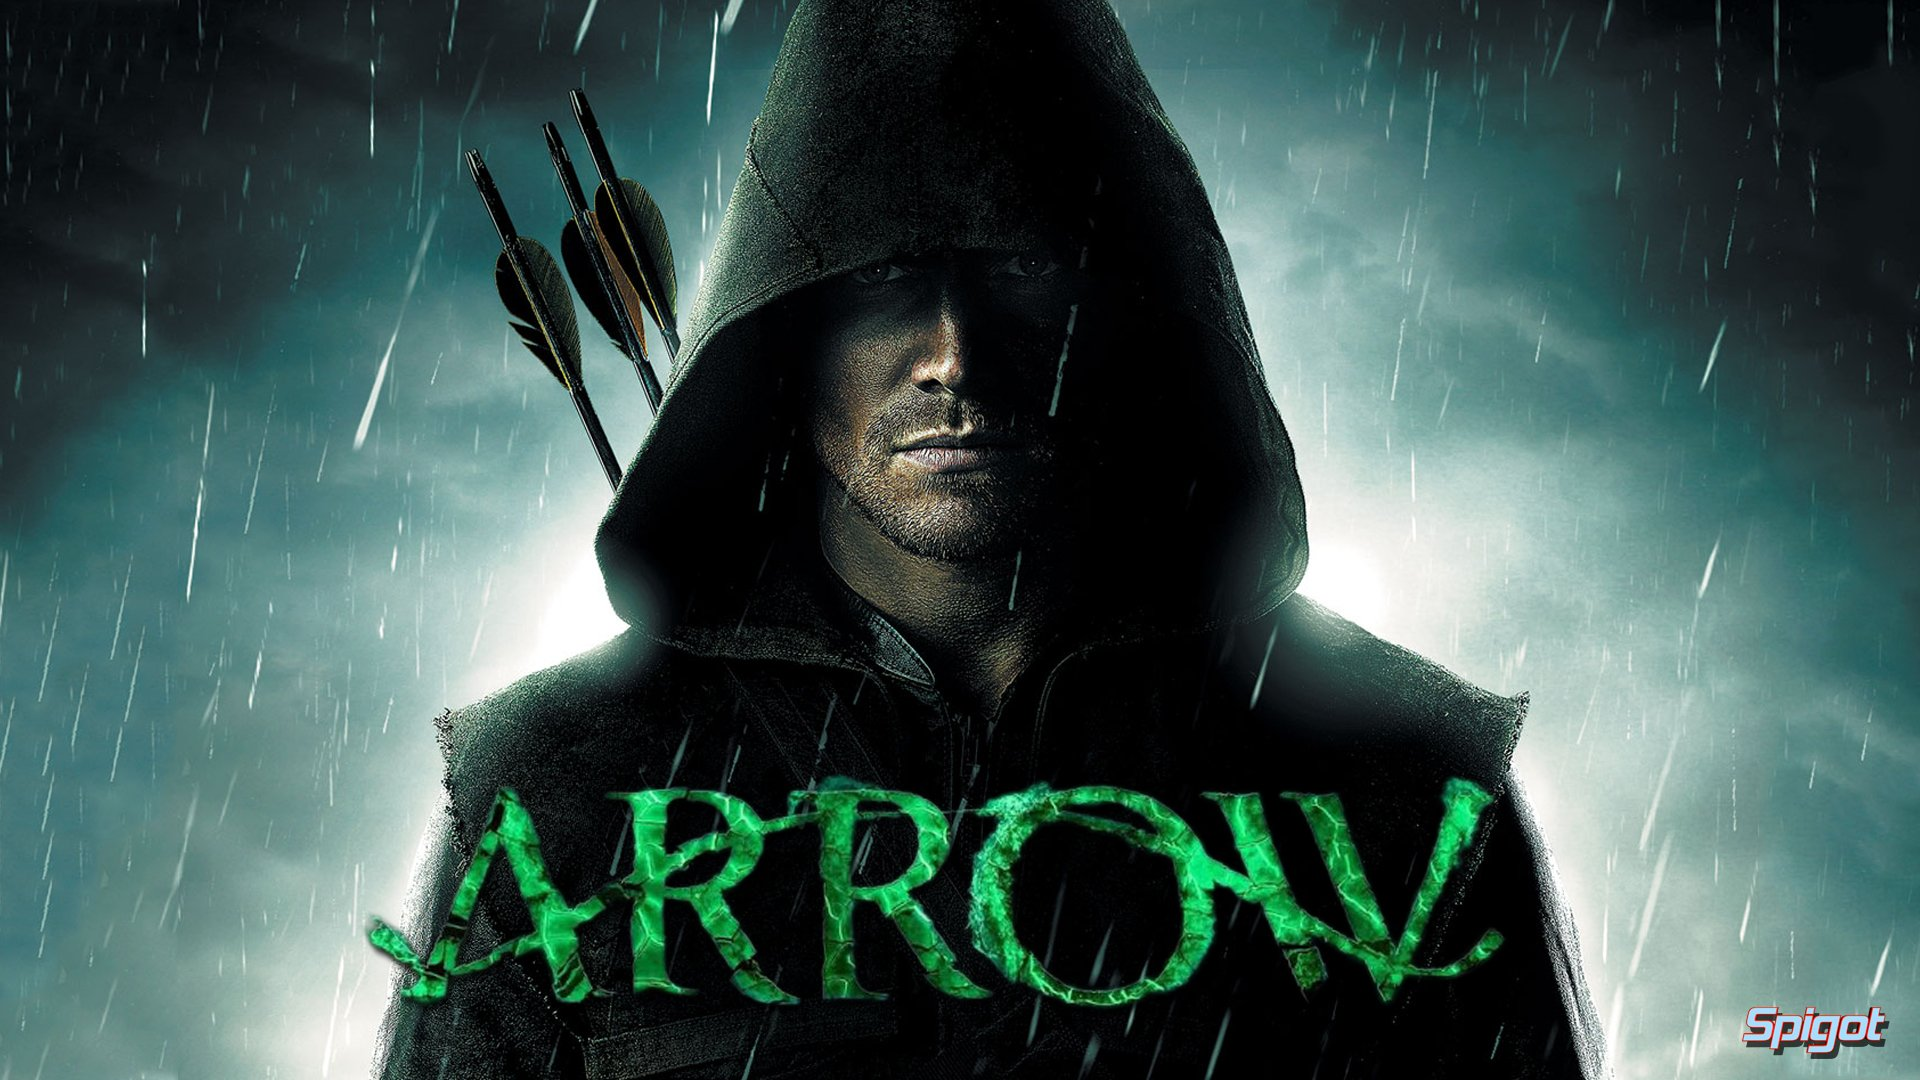 ARROW green action adventure crime television series poster warrior 1920x1080